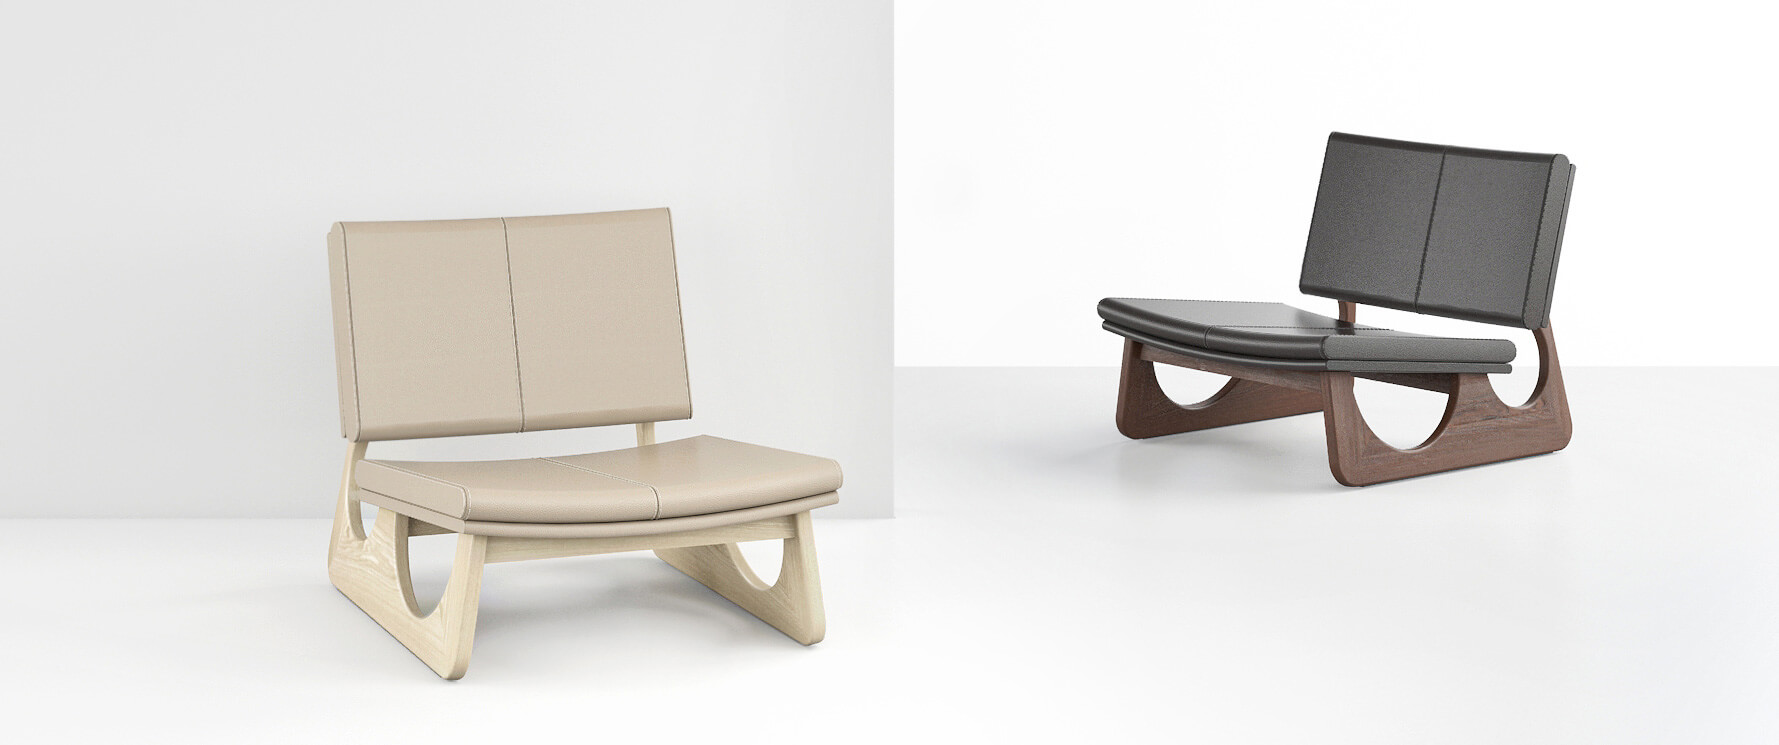 Sledge Lounge Chair | Made in Turkey: Curated by Arhan Kayar | STIRworld